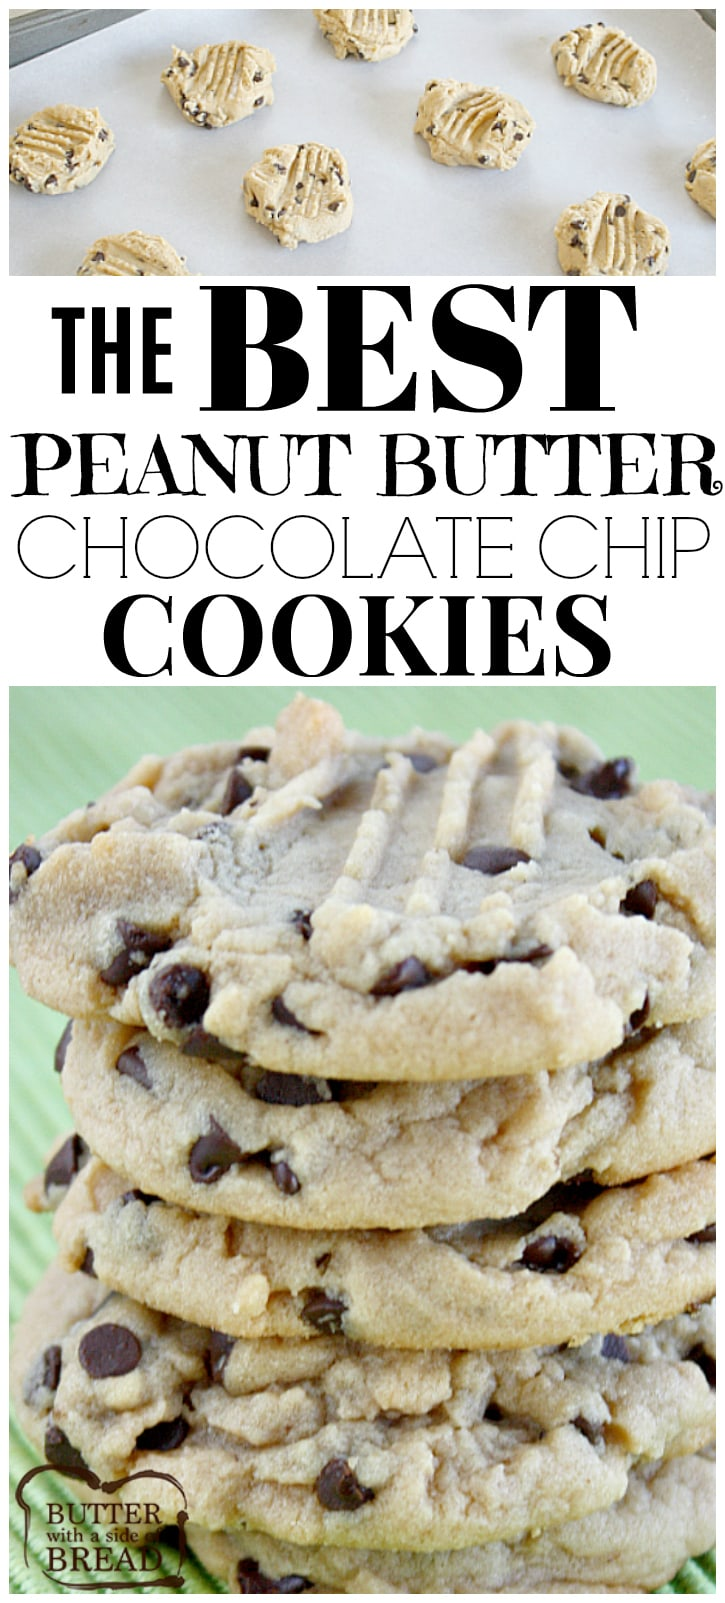 THE BEST PEANUT BUTTER CHOCOLATE CHIP COOKIES - Butter with a Side ...